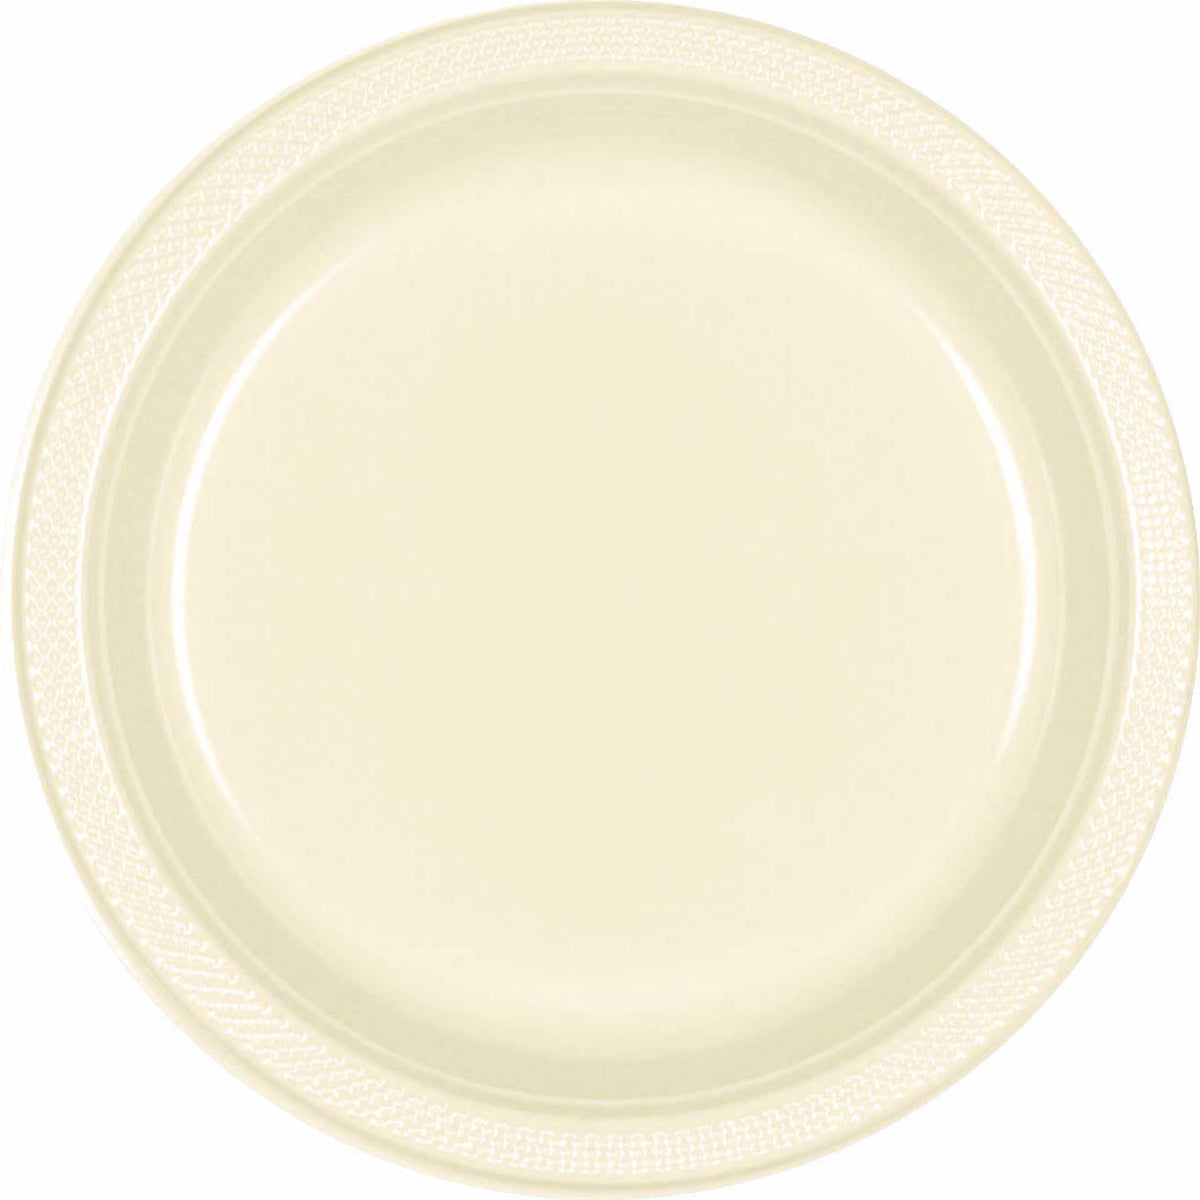 7 Inch Ivory Plastic Plates